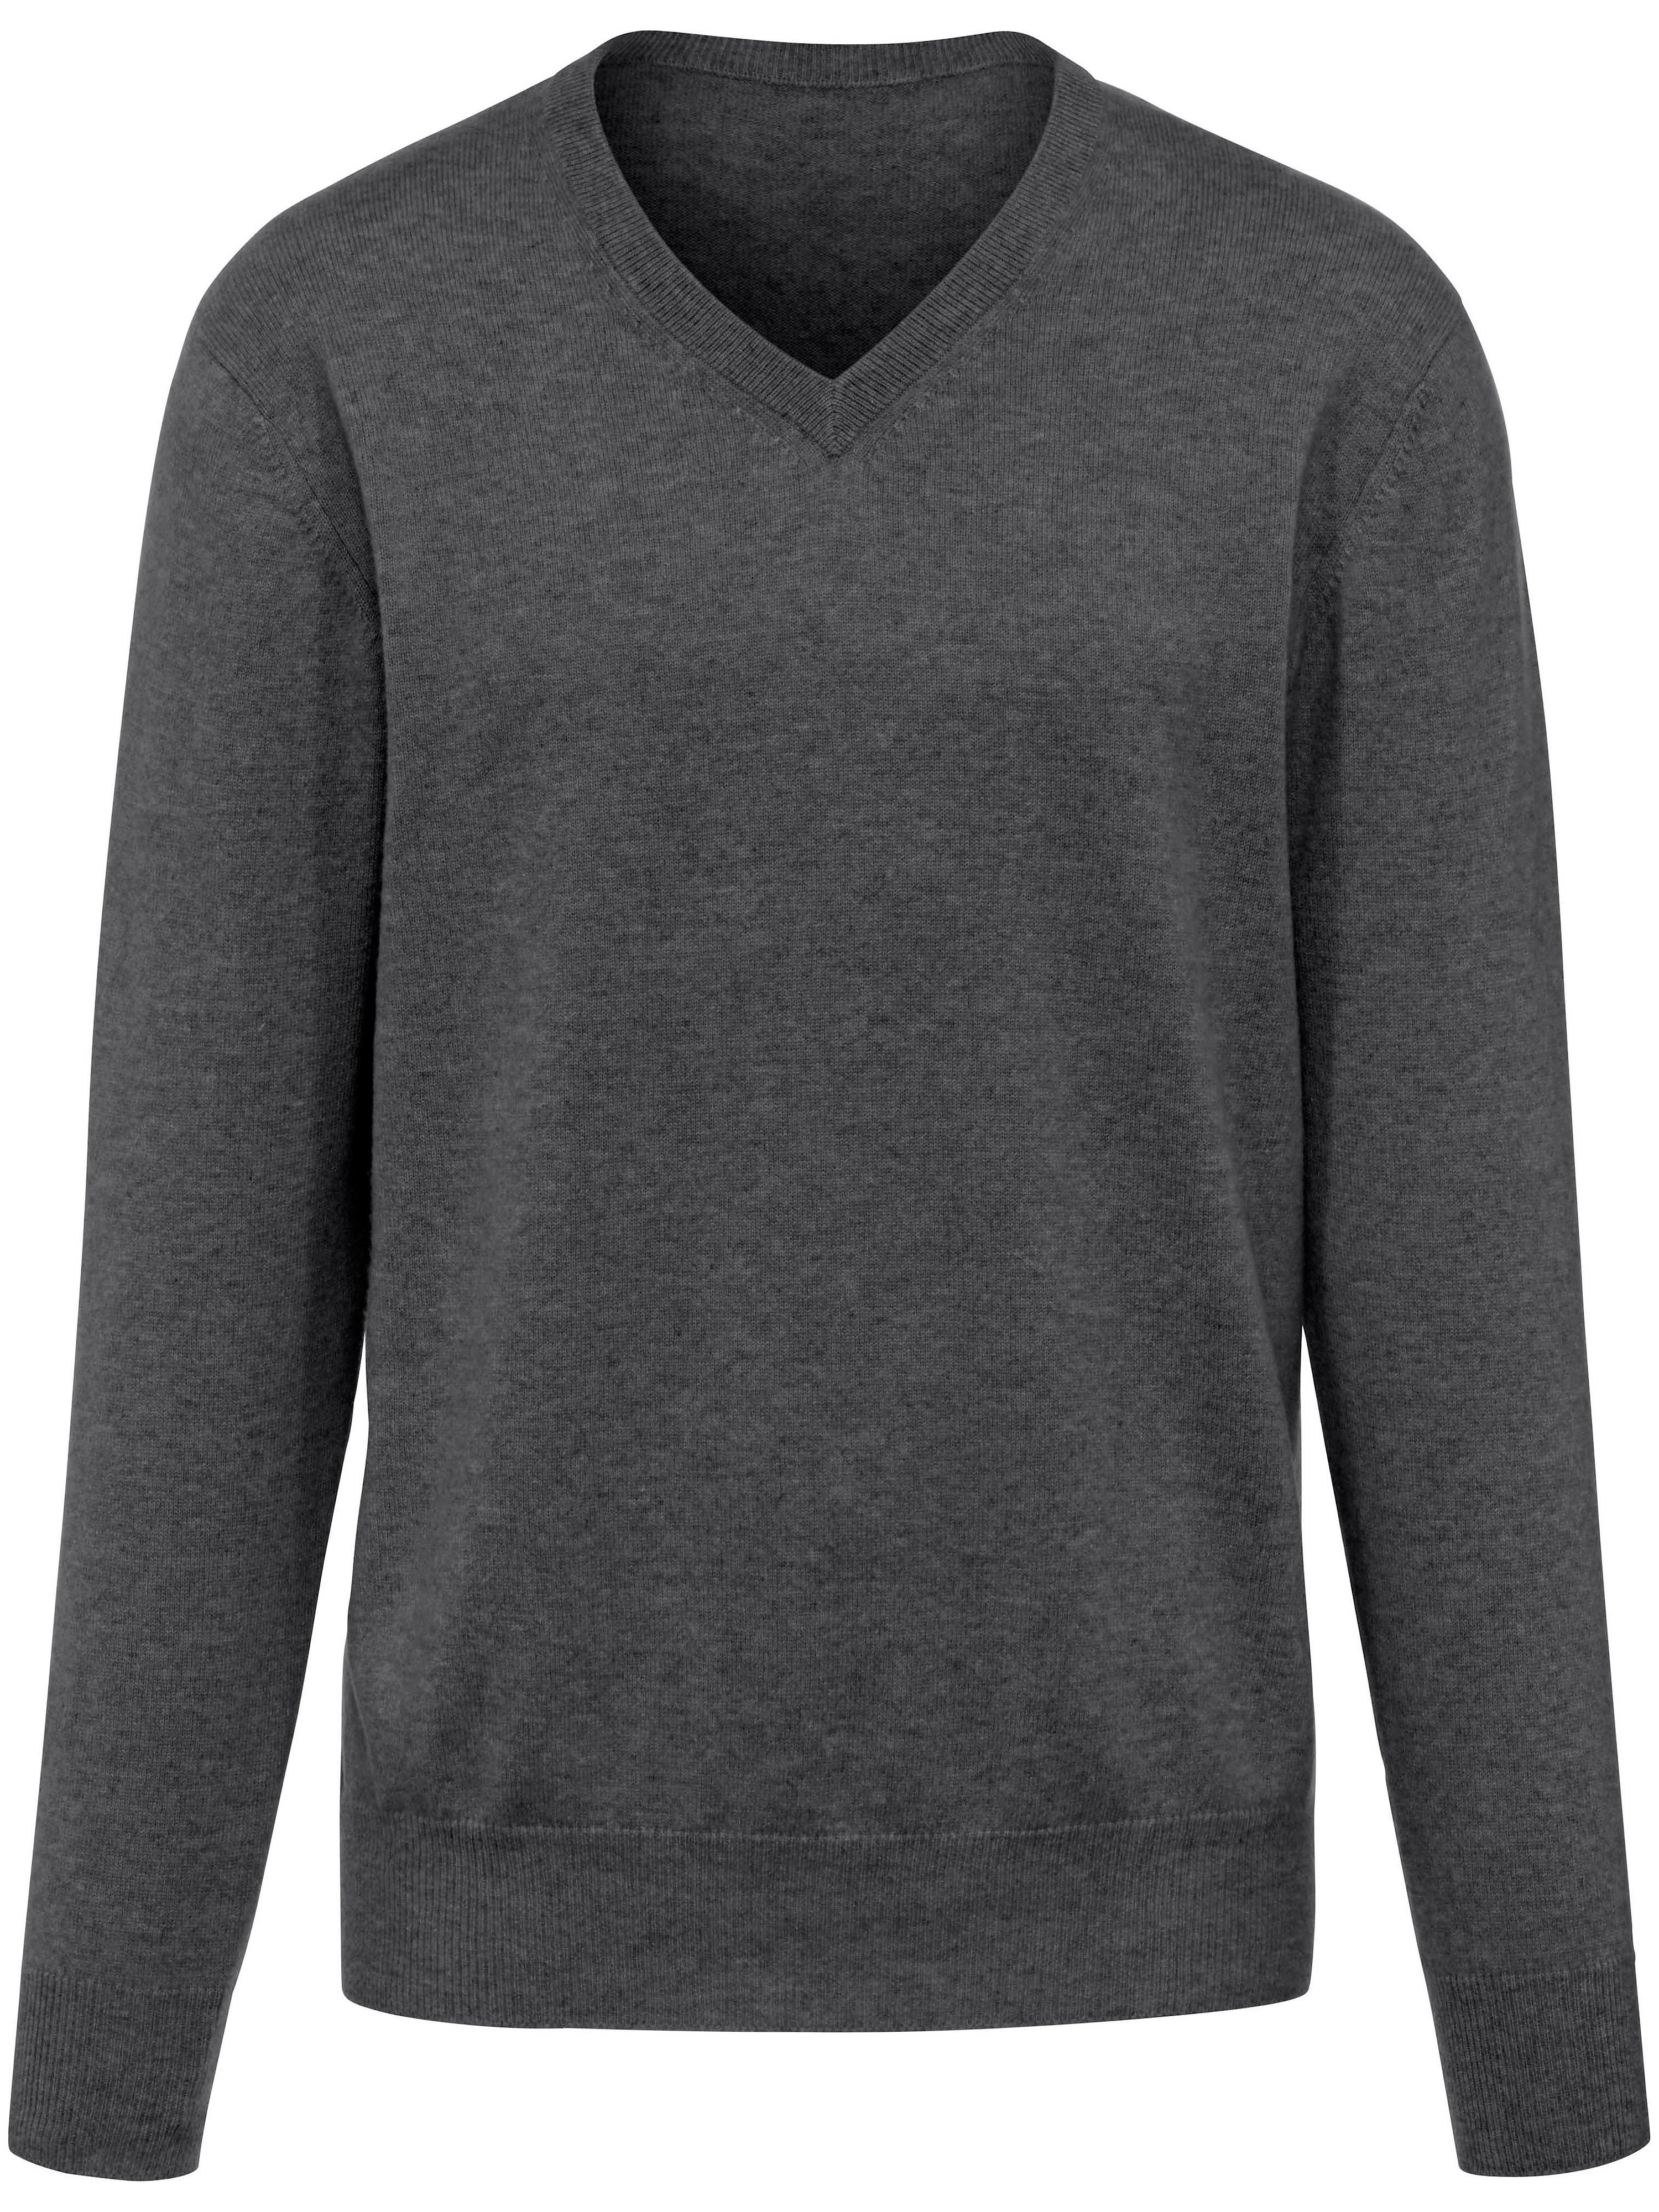 Le pull col V 100% cachemire  Peter Hahn Cashmere gris taille 50